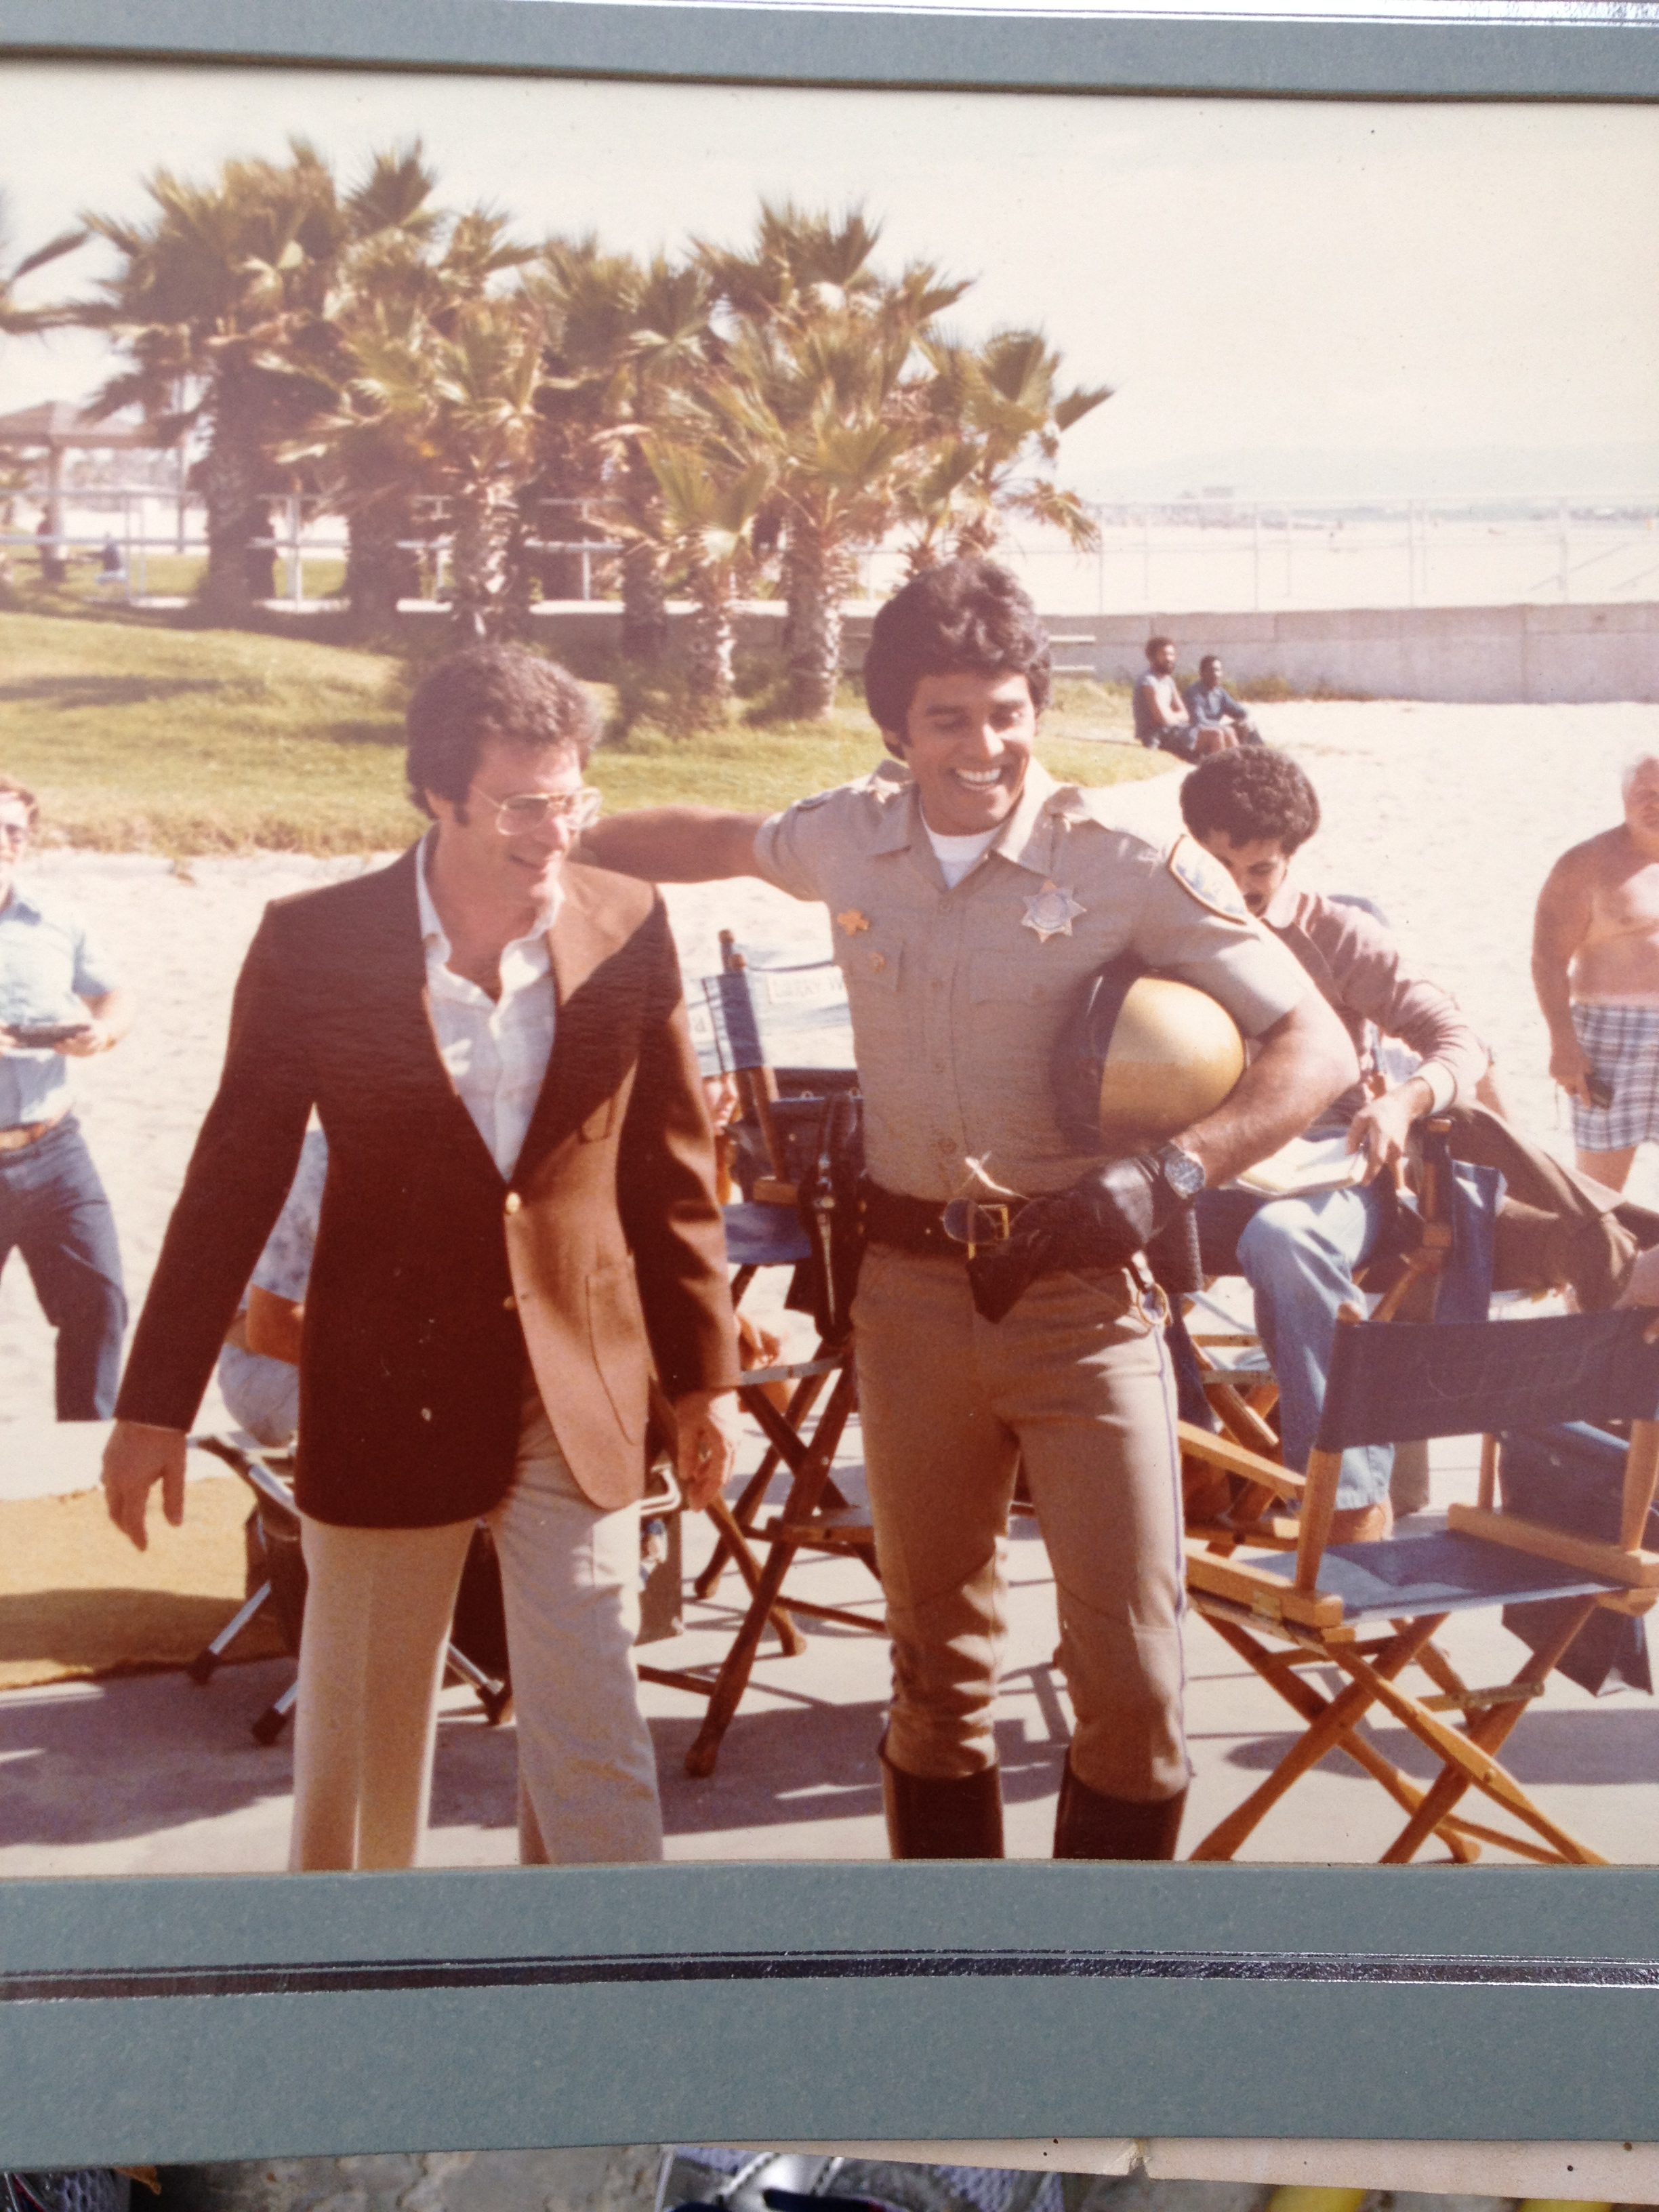 Photograph of Erik Estrada on the film set of television show CHiPs in Los Angeles California in the early 1980's.